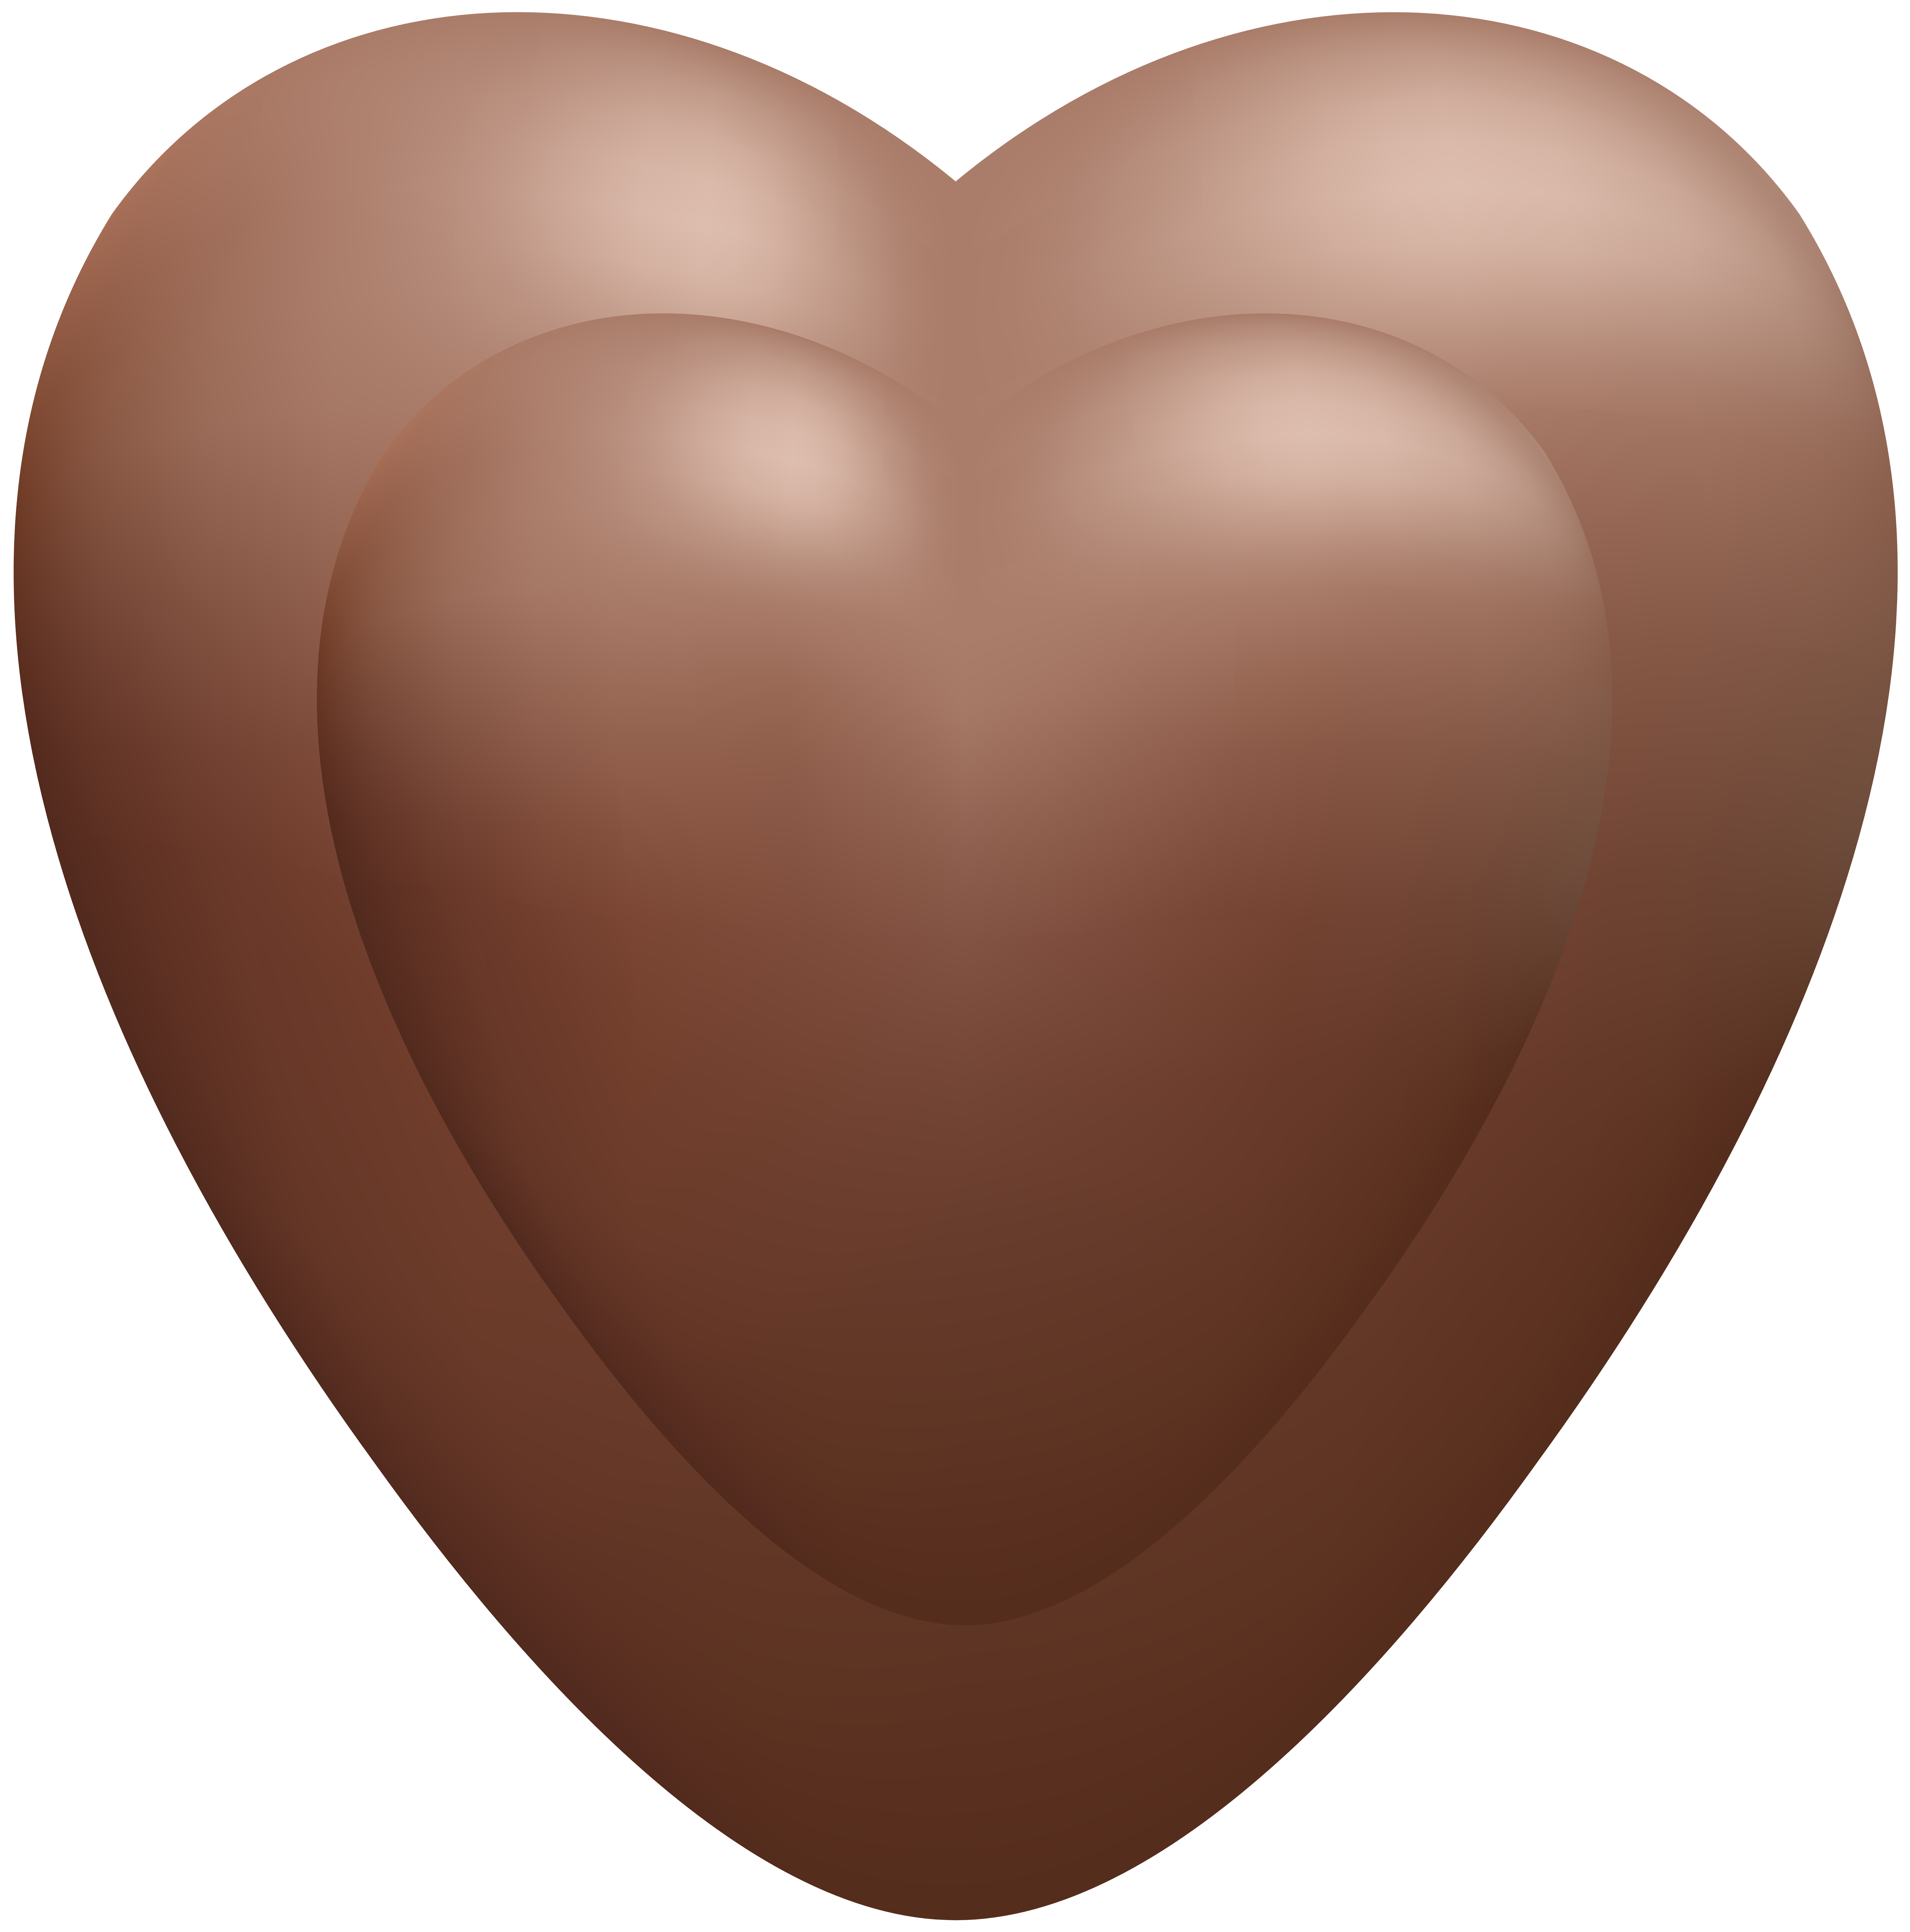 Chocolate heart clipart jpg black and white stock Chocolate Heart Transparent PNG Clip Art Image | Gallery ... jpg black and white stock